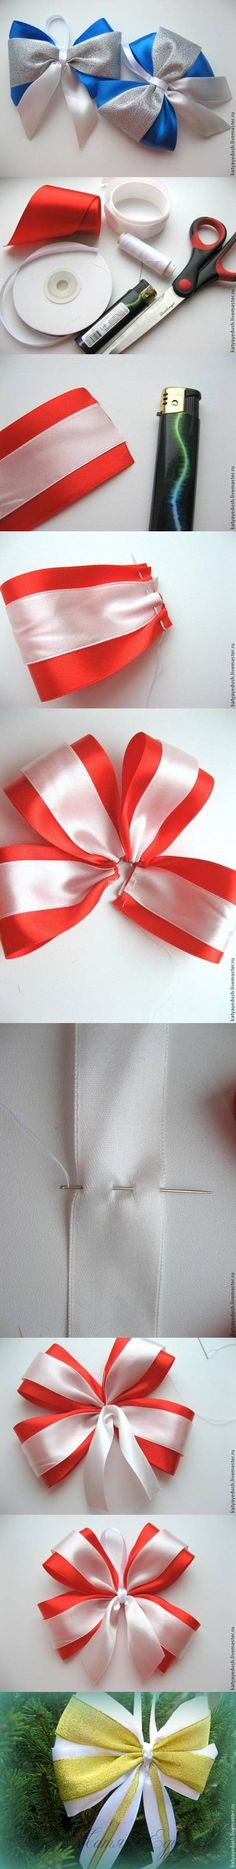 DIY Bow for Christmas Trees DIY Projects | UsefulDIY.com Follow Us on Facebook ==> http://www.facebook.com/UsefulDiy